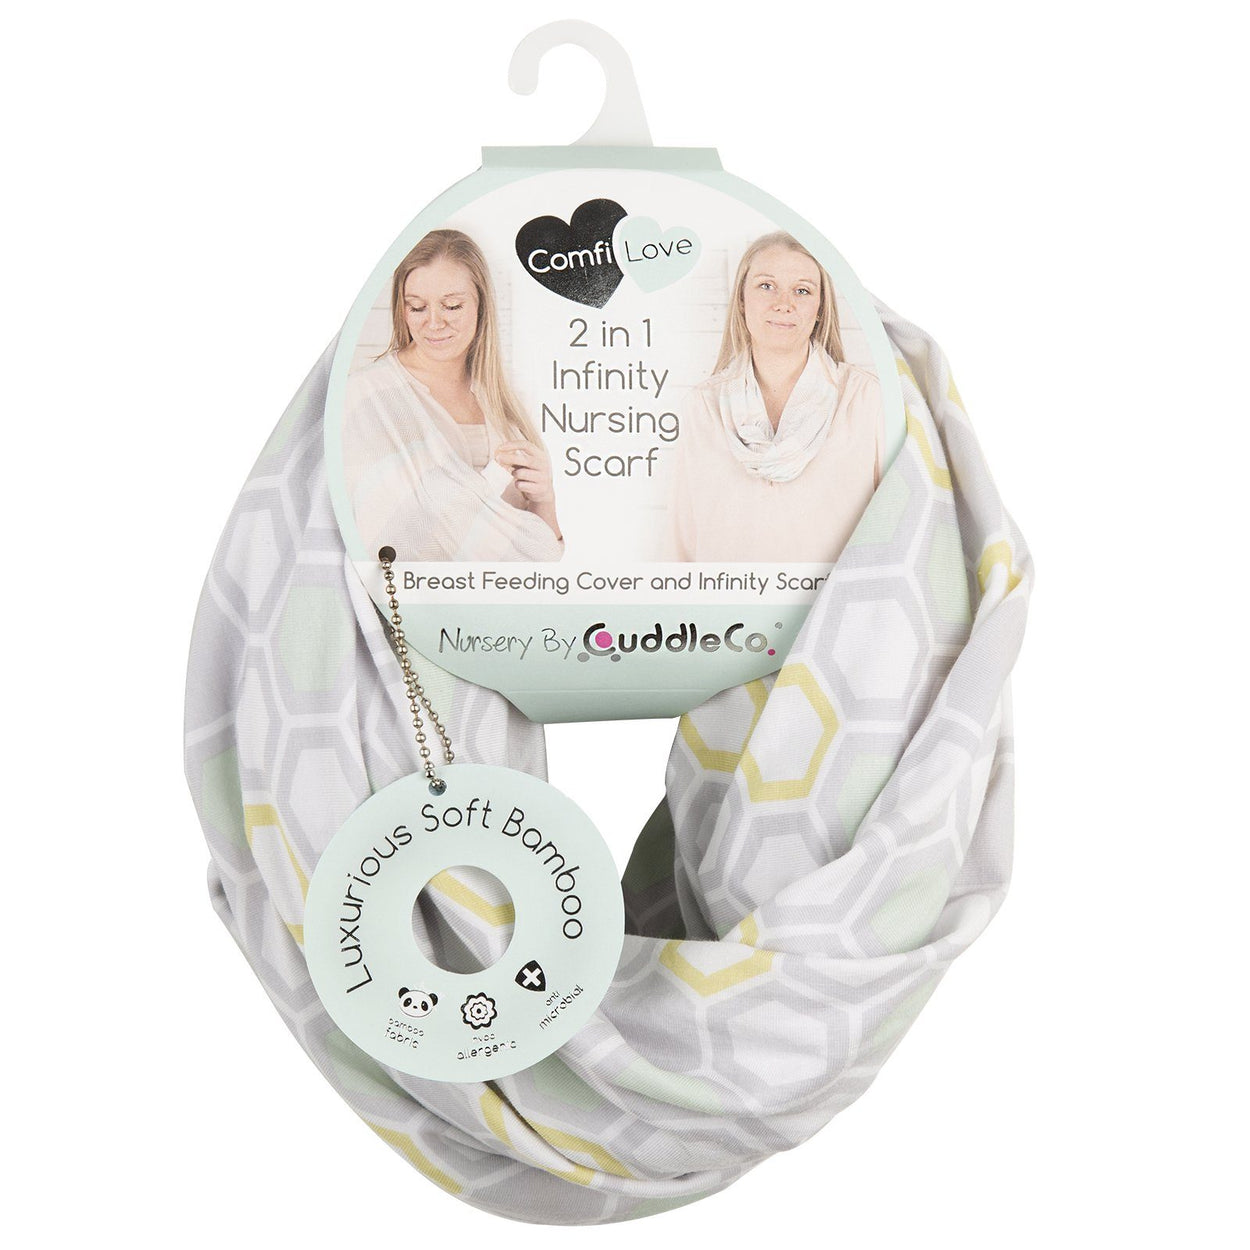 Comfi- Love 2 in 1 Infinity Nursing Scarf - Beehive Feeding & Support cuddleco